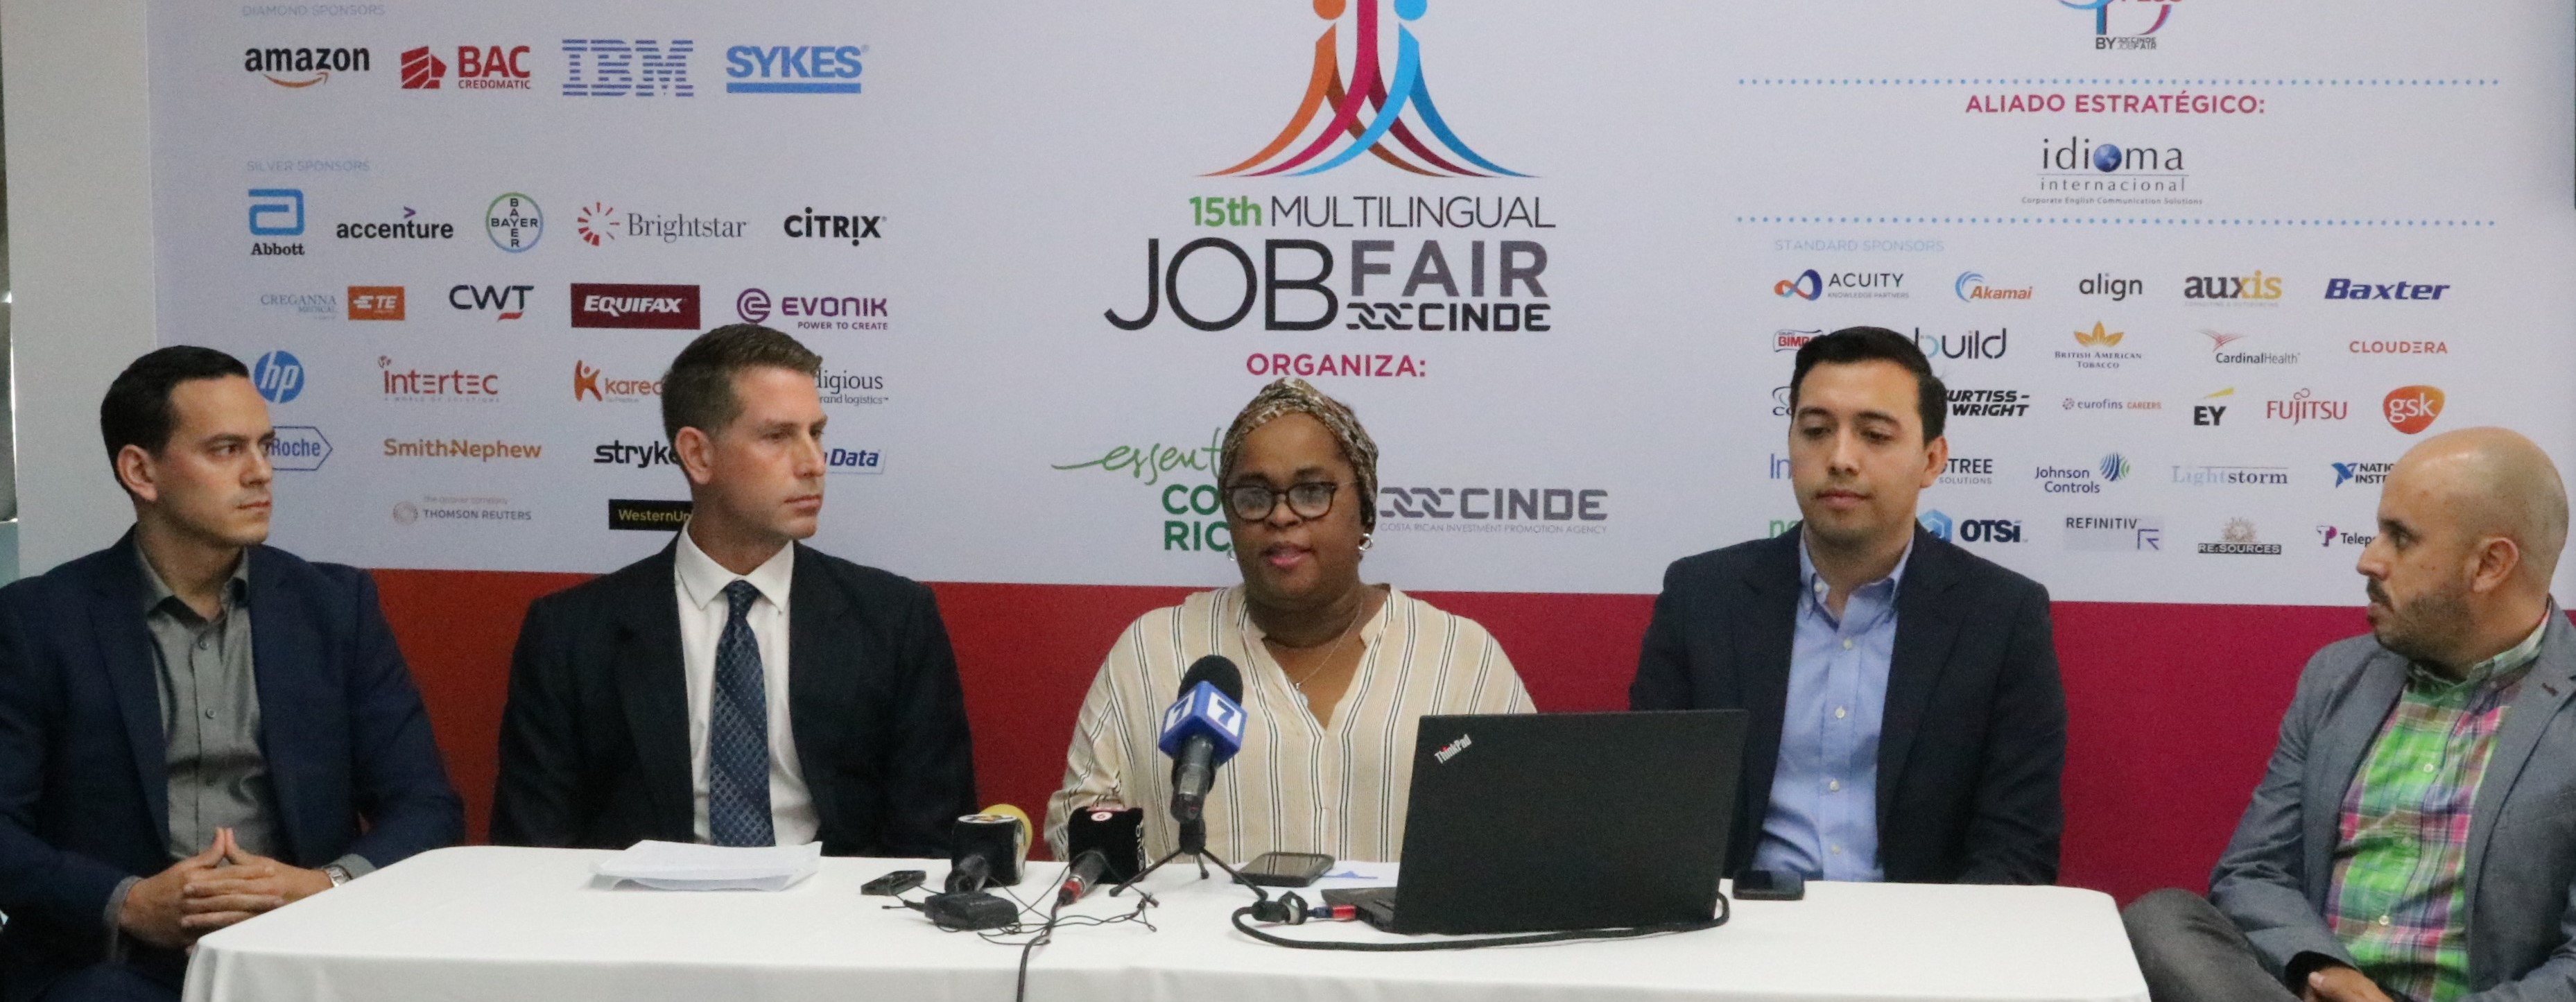 CINDE Job Fair Aims to Fill 3,000 Positions